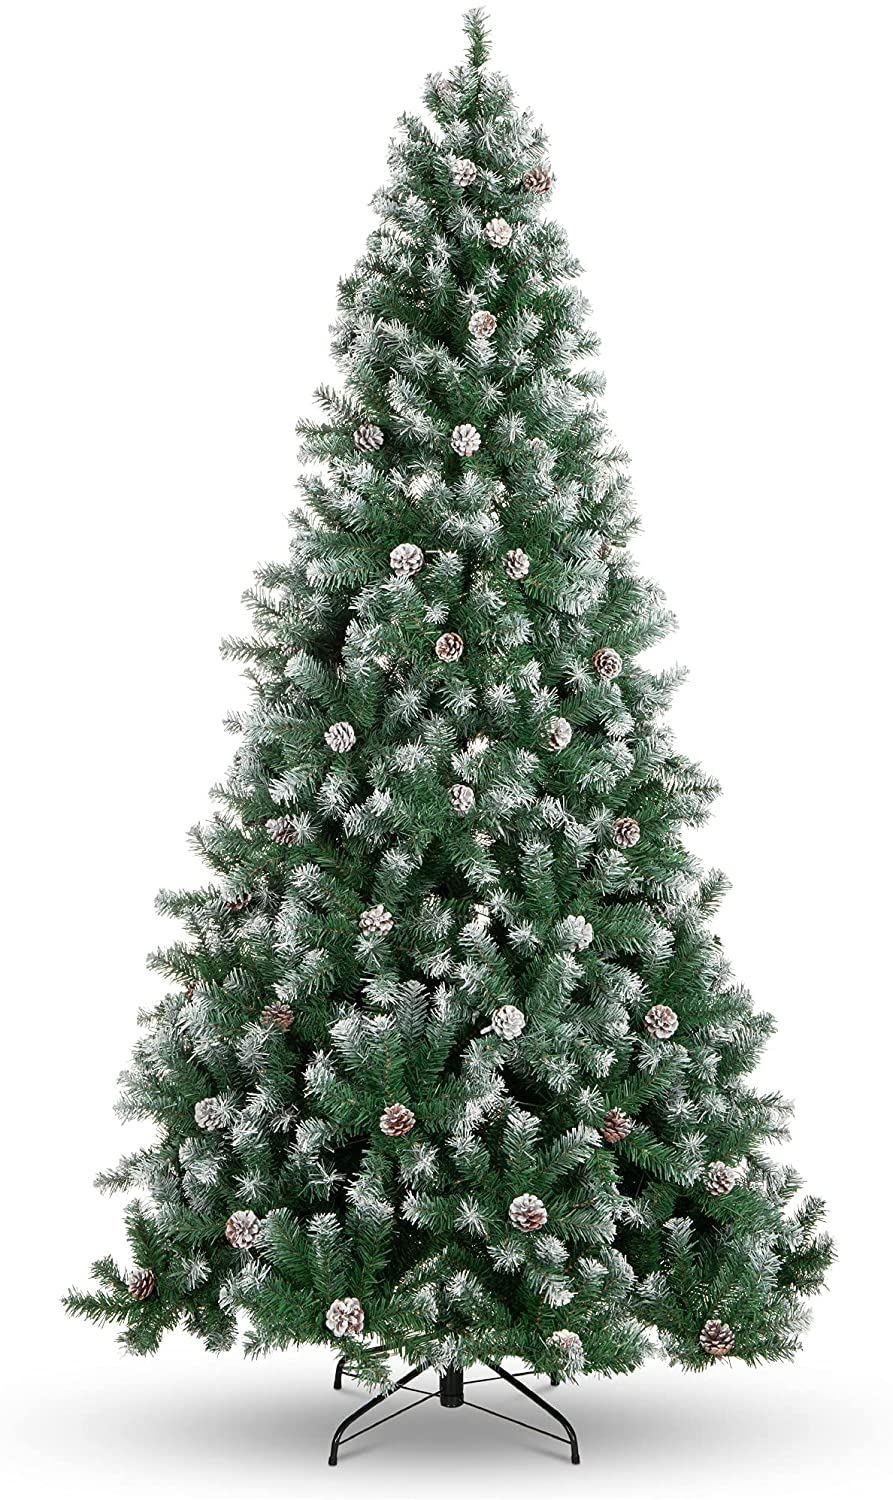 How to Flock a Christmas Tree - And The Best Flocked Christmas Trees on Amazon